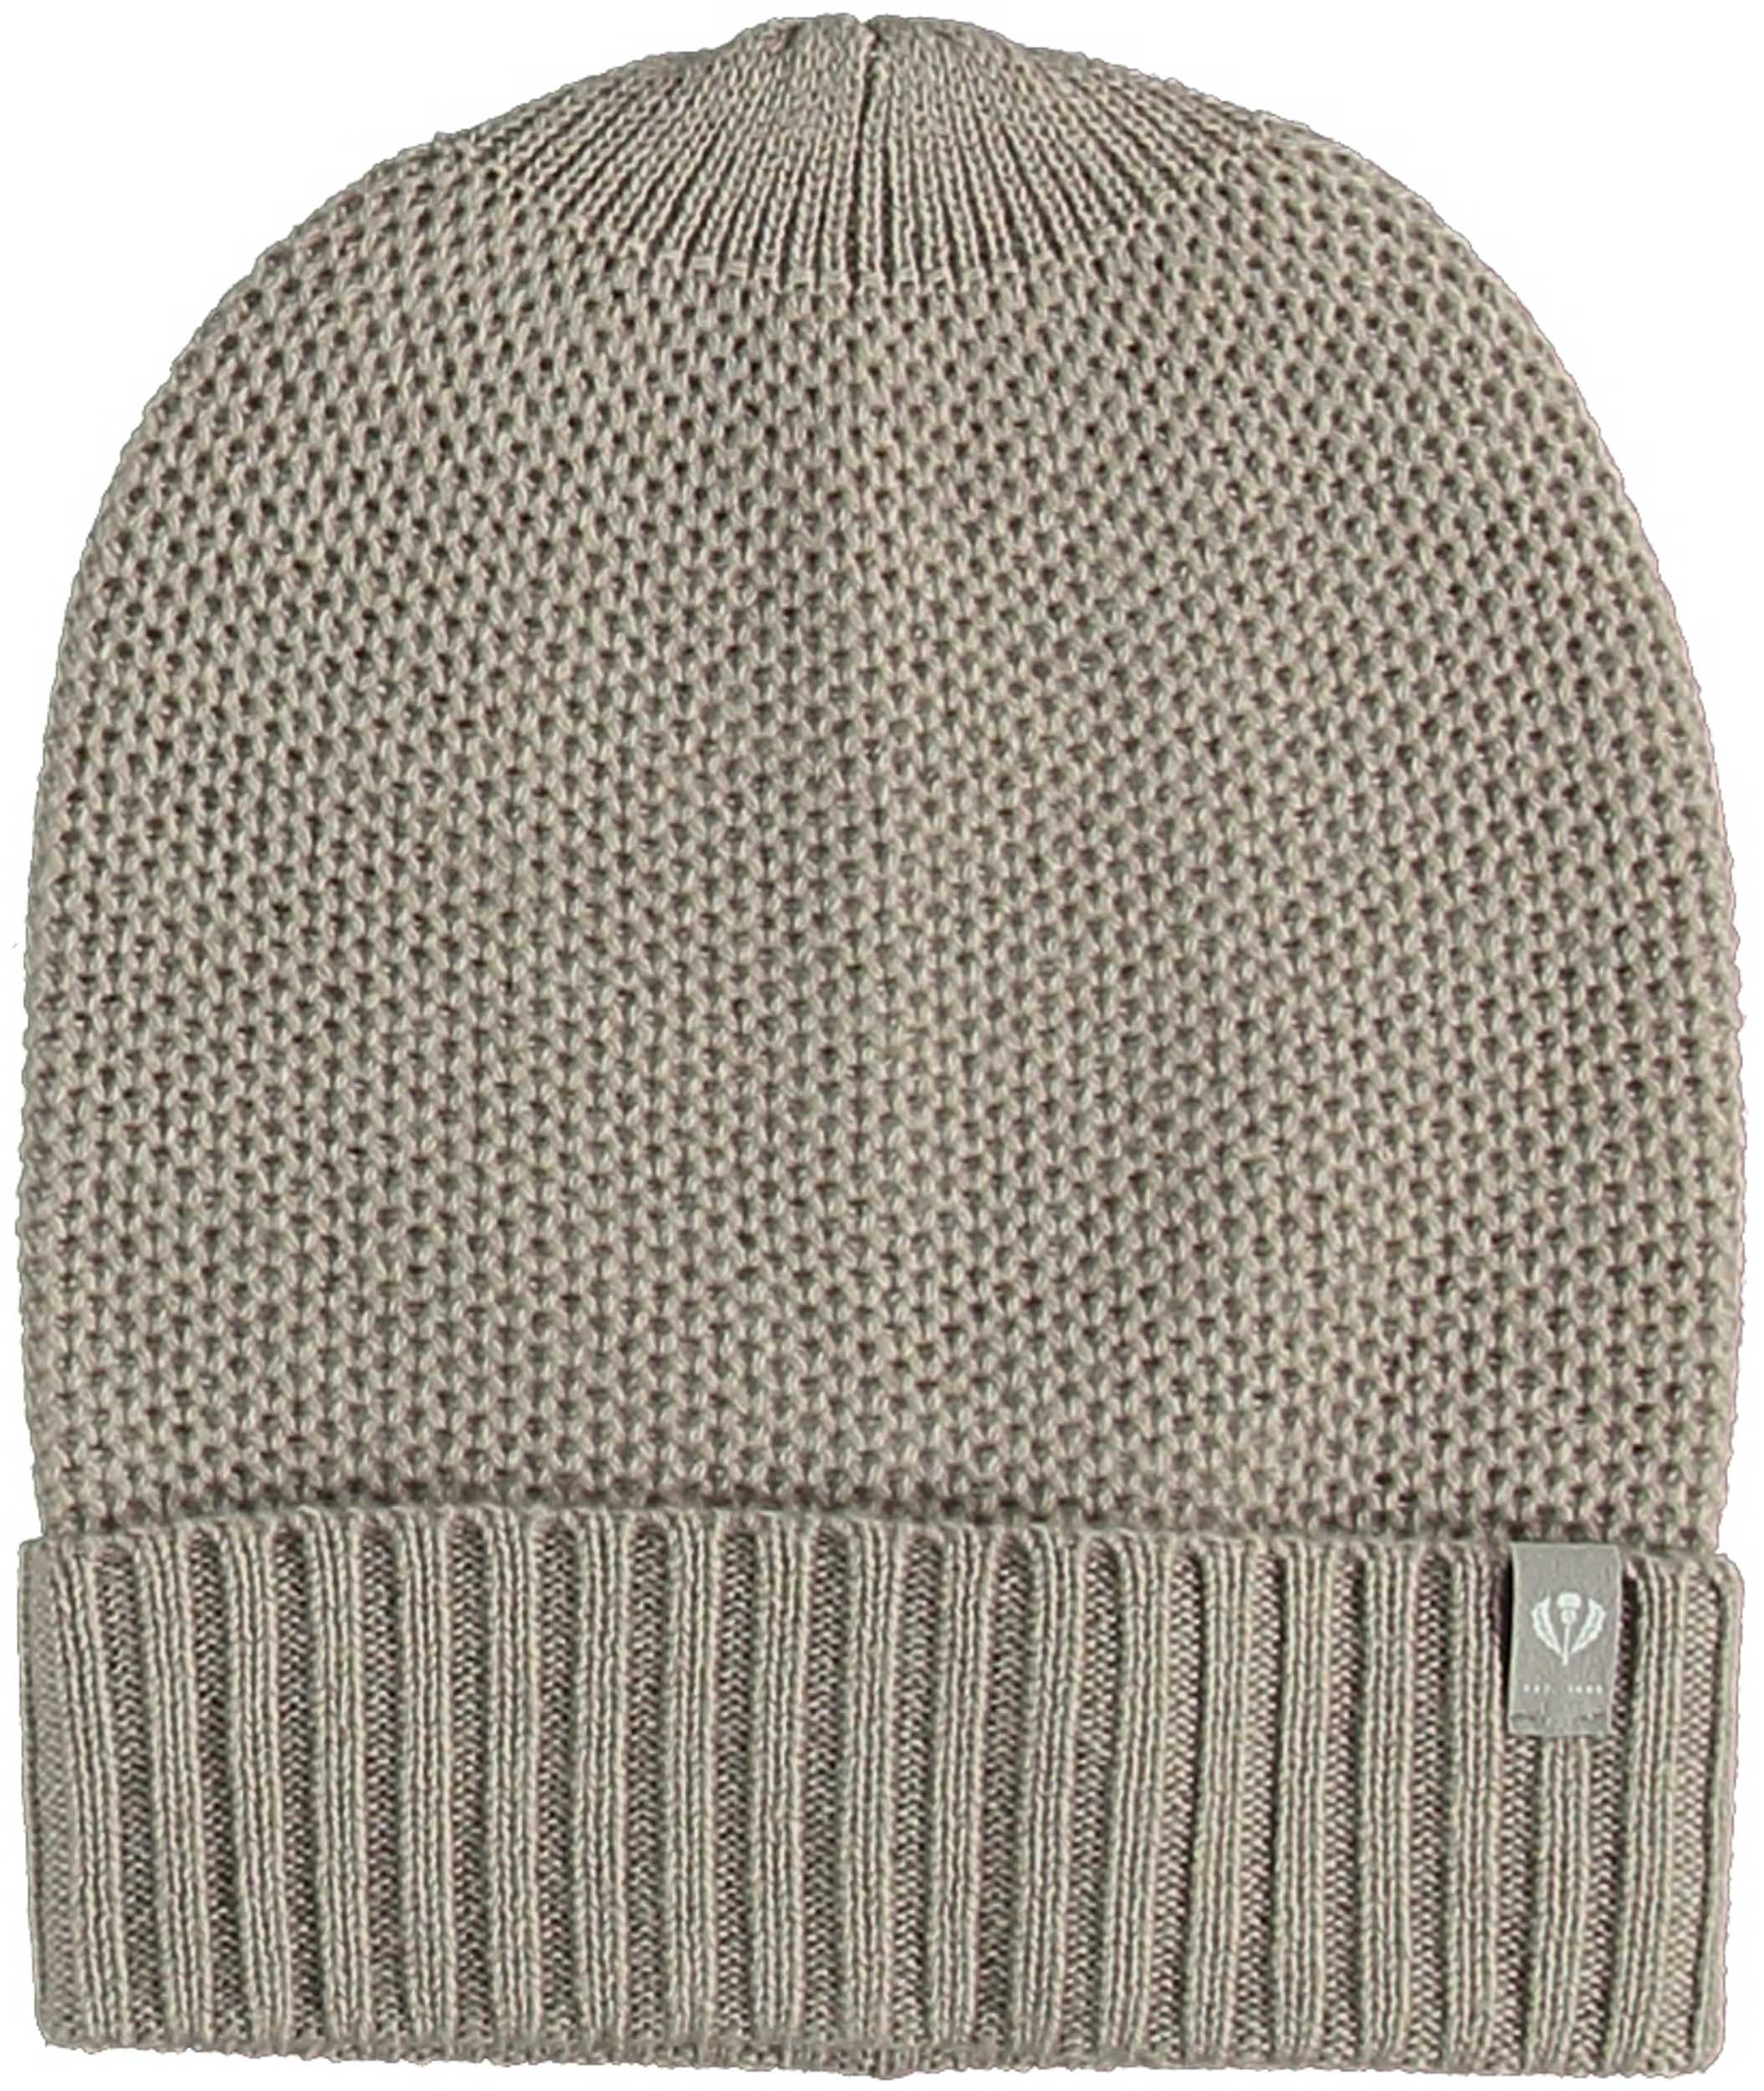 Signature Texture Knit Cashmere Wool Hat